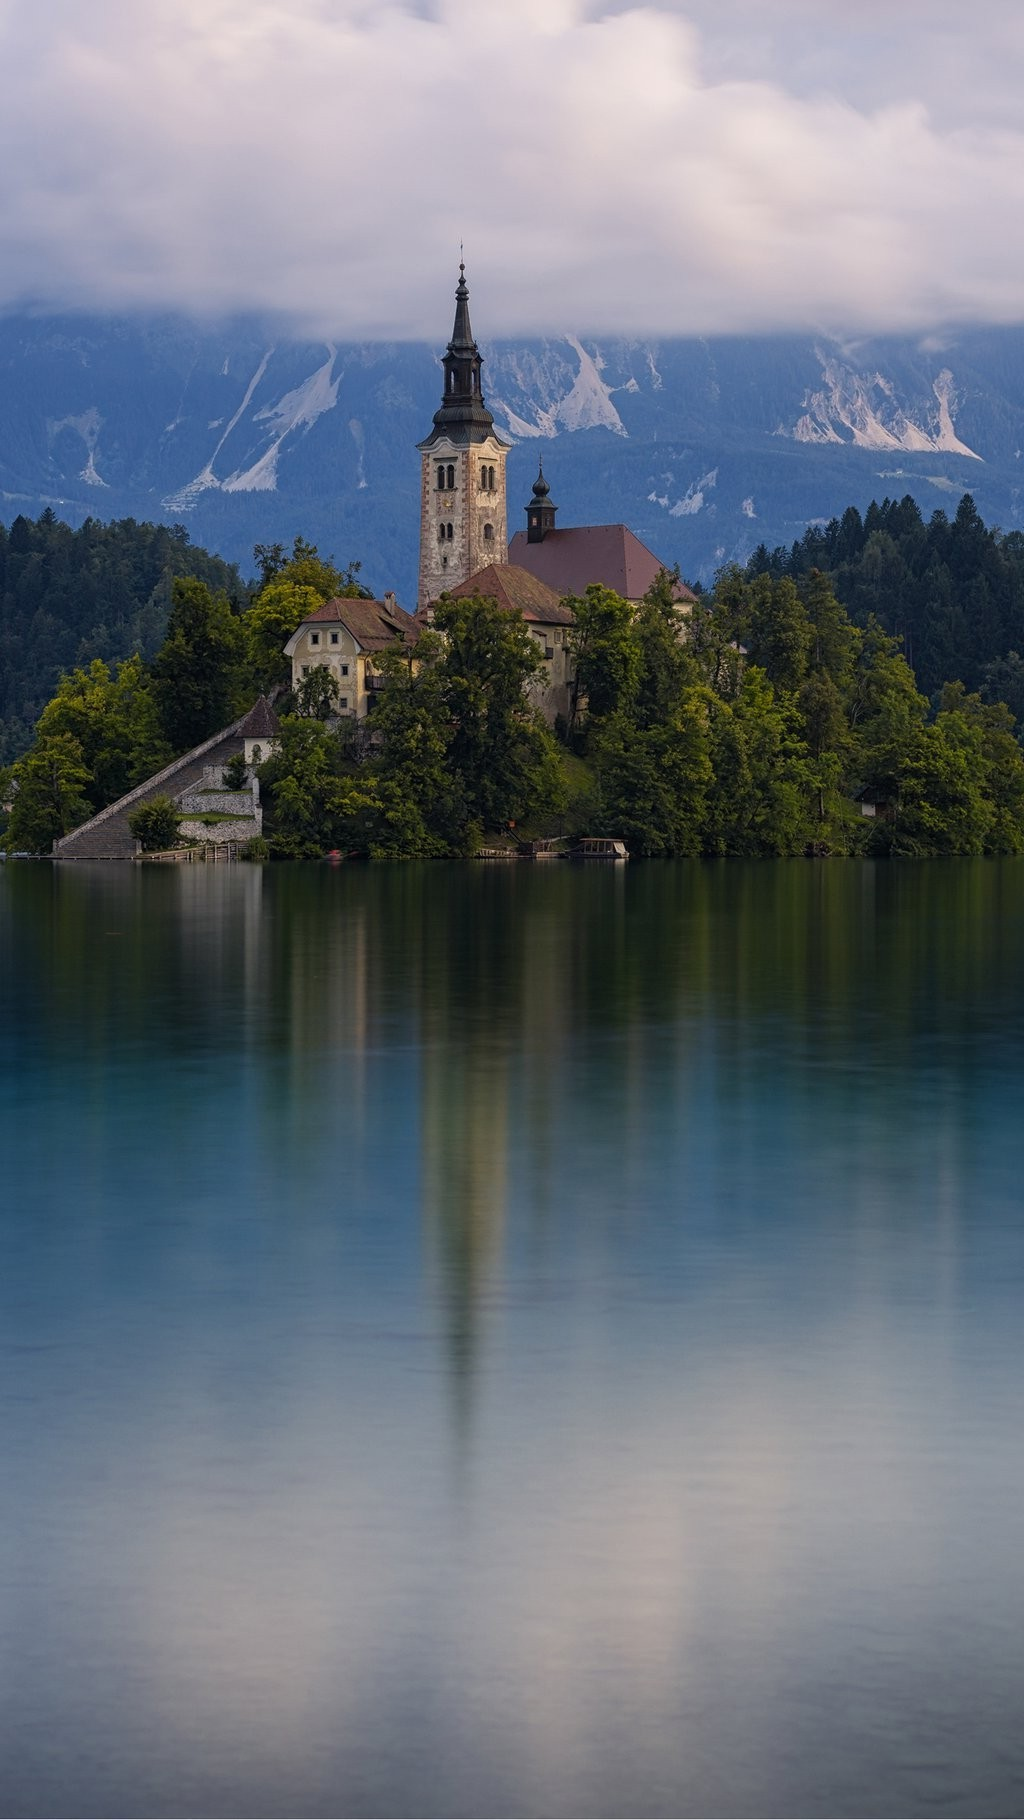 Wallpaper For Girls 2560x1600 Architecture Building Portrait Display Church Slovenia